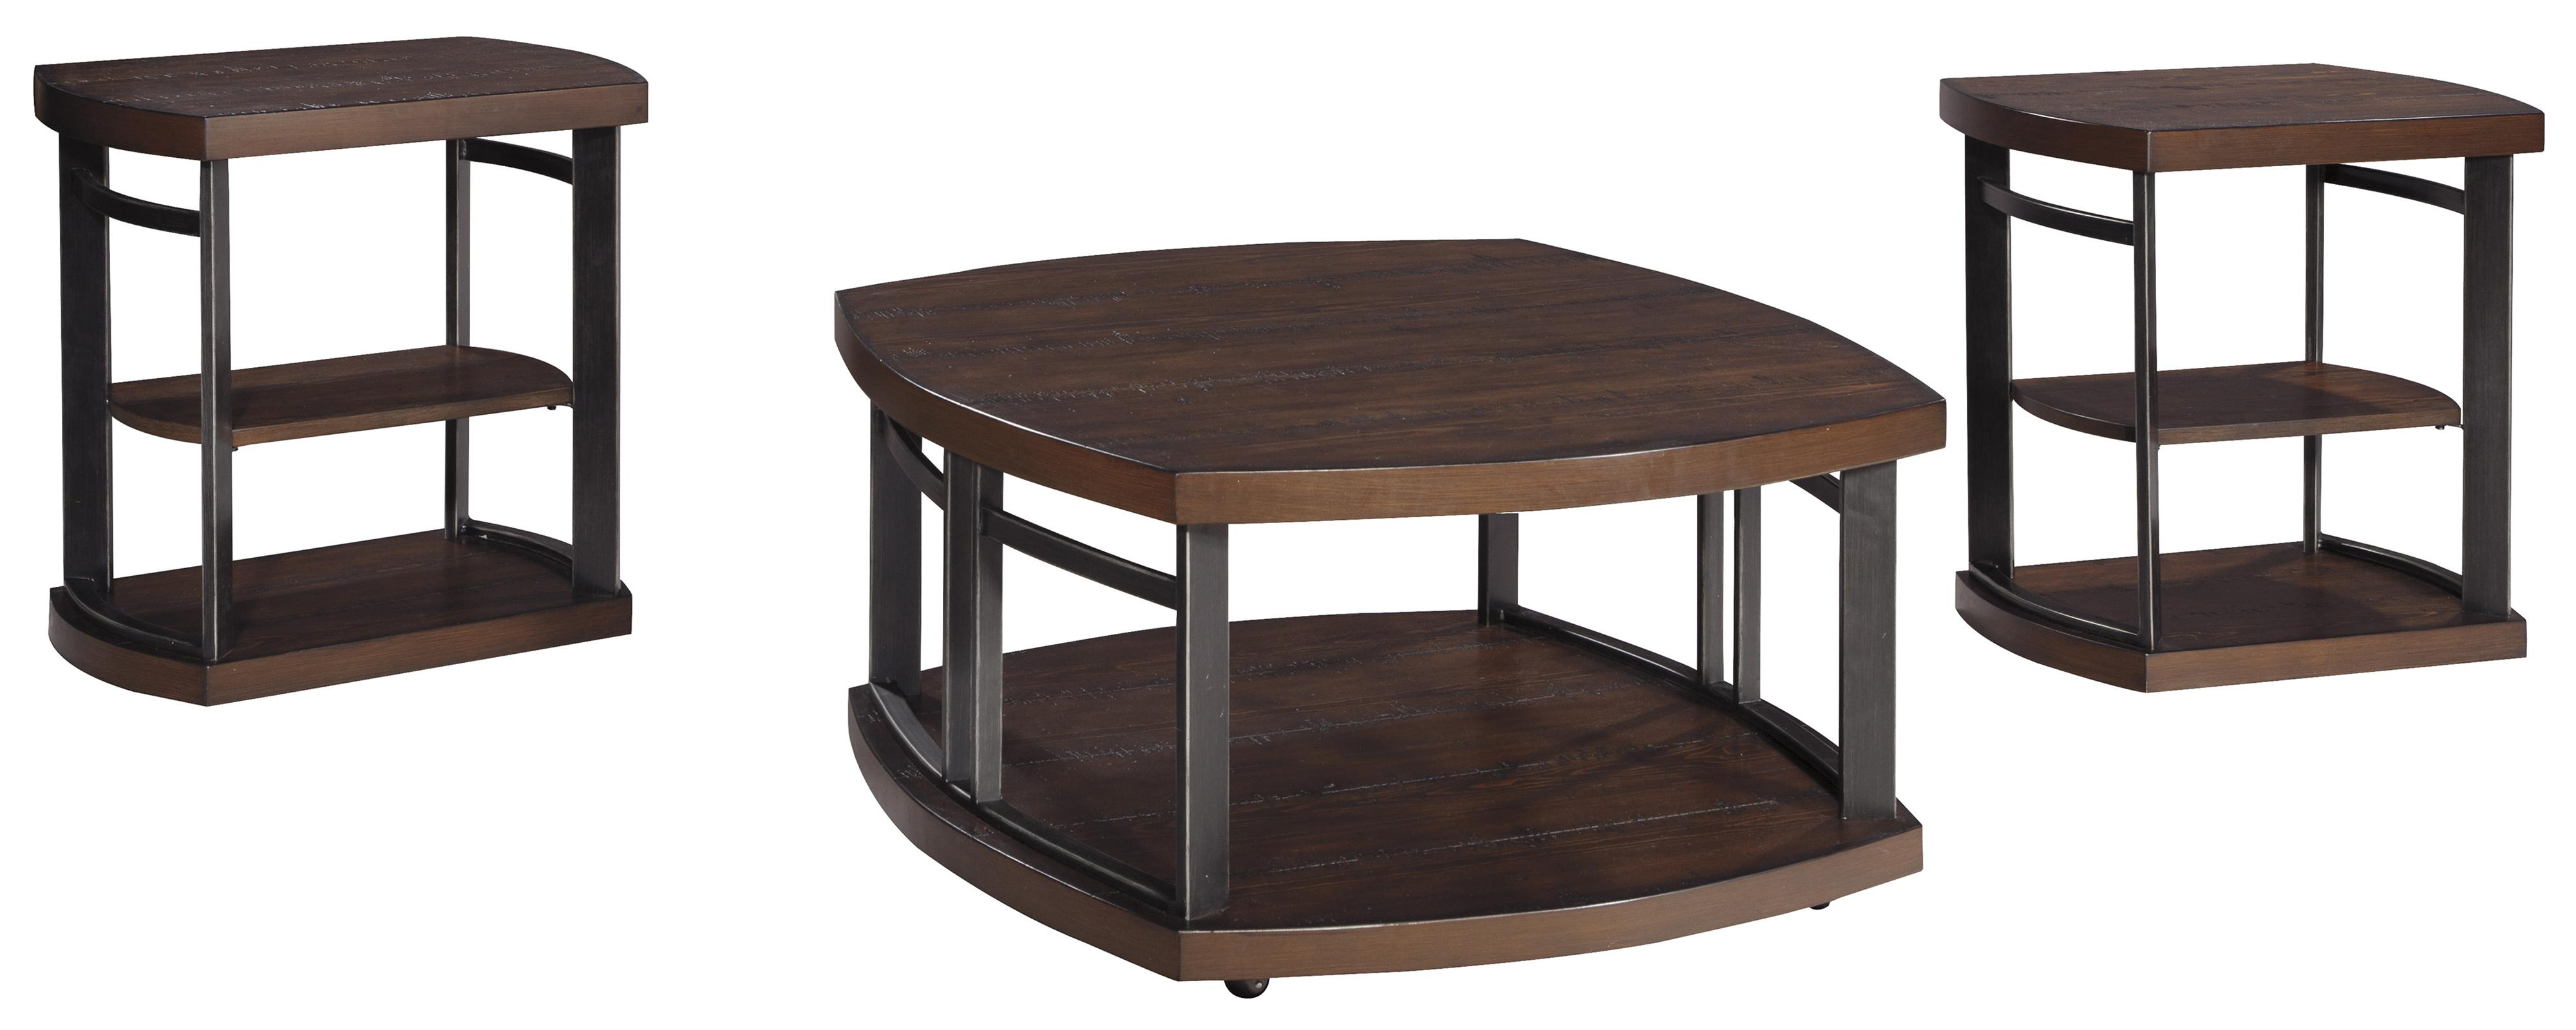 Signature Design By Ashley Challiman 3 Piece Occasional Table Set With Distressed Pine Tops